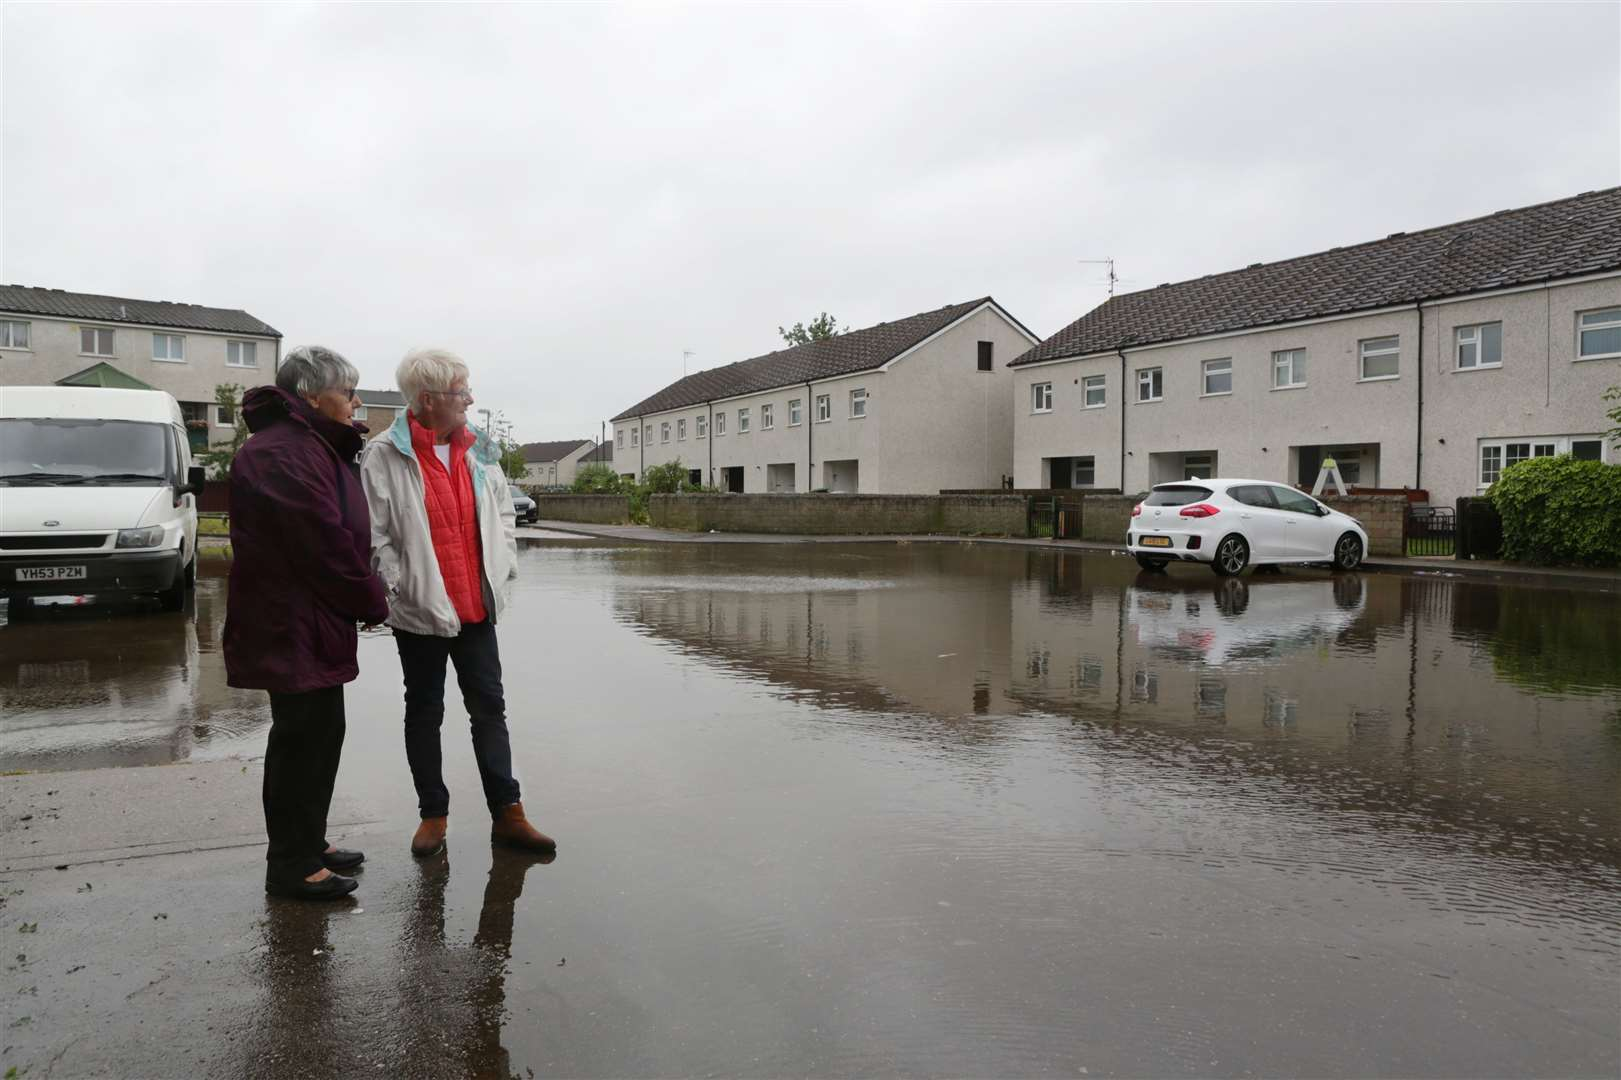 Cllr Irene Brown and Cllr Gill Dawn at the site of severe flooding on Lincoln Court, Newark. 110619TV2-1. (12162131)